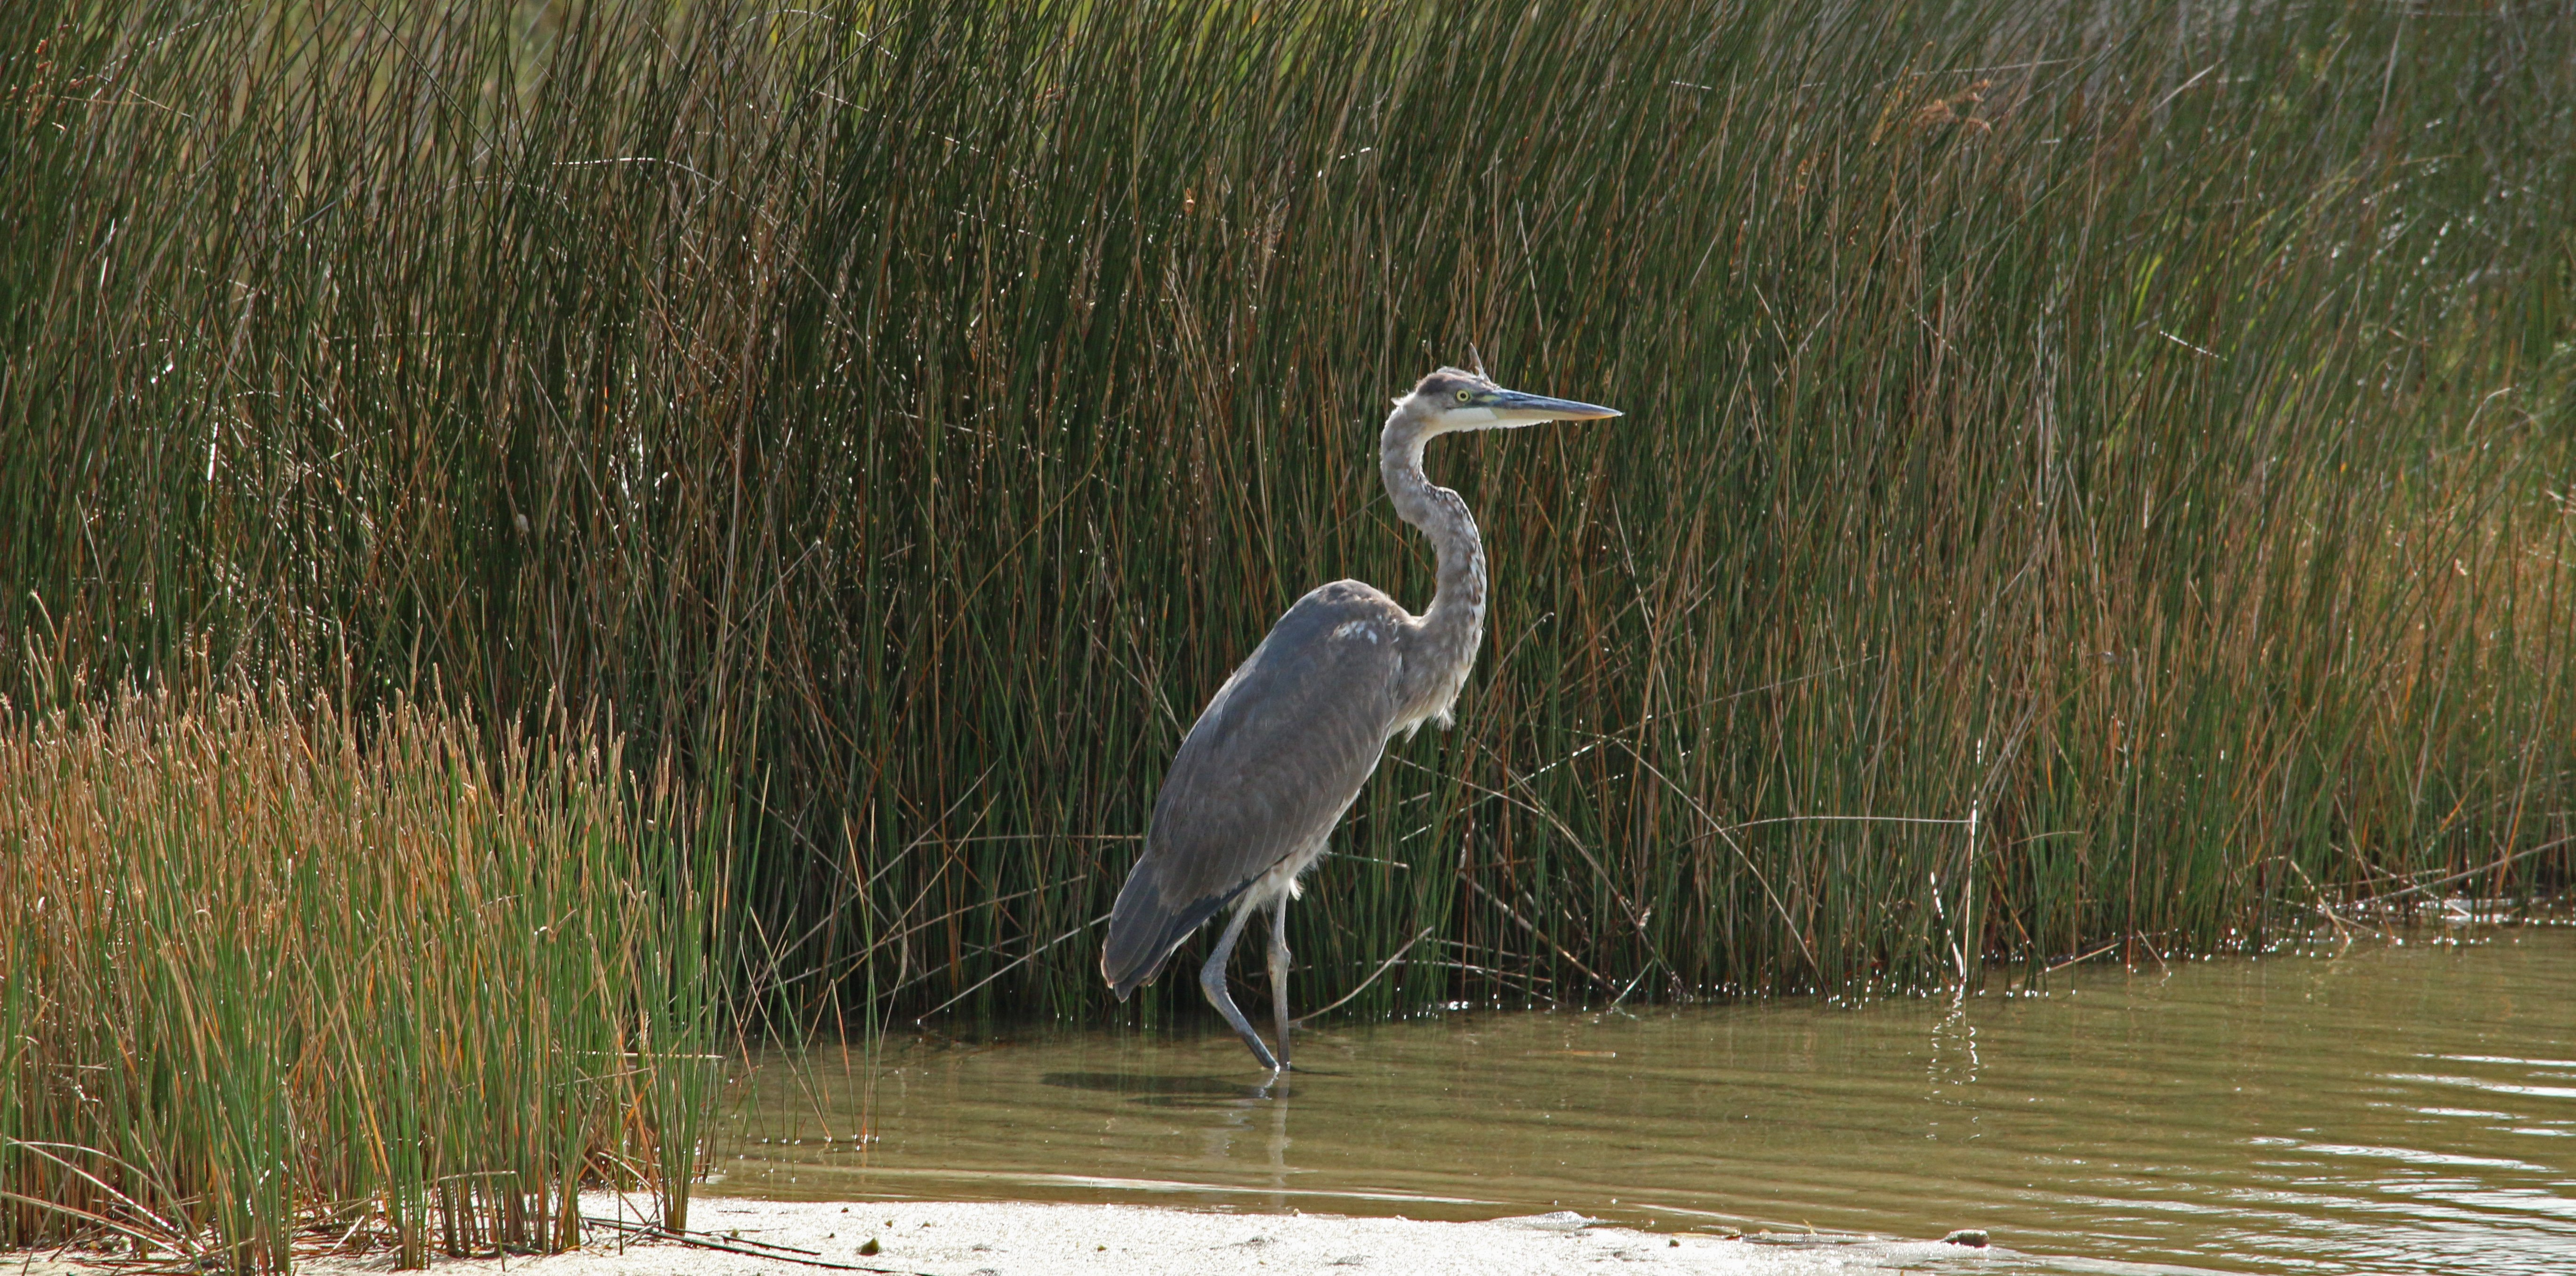 great blue heron, nature, birding